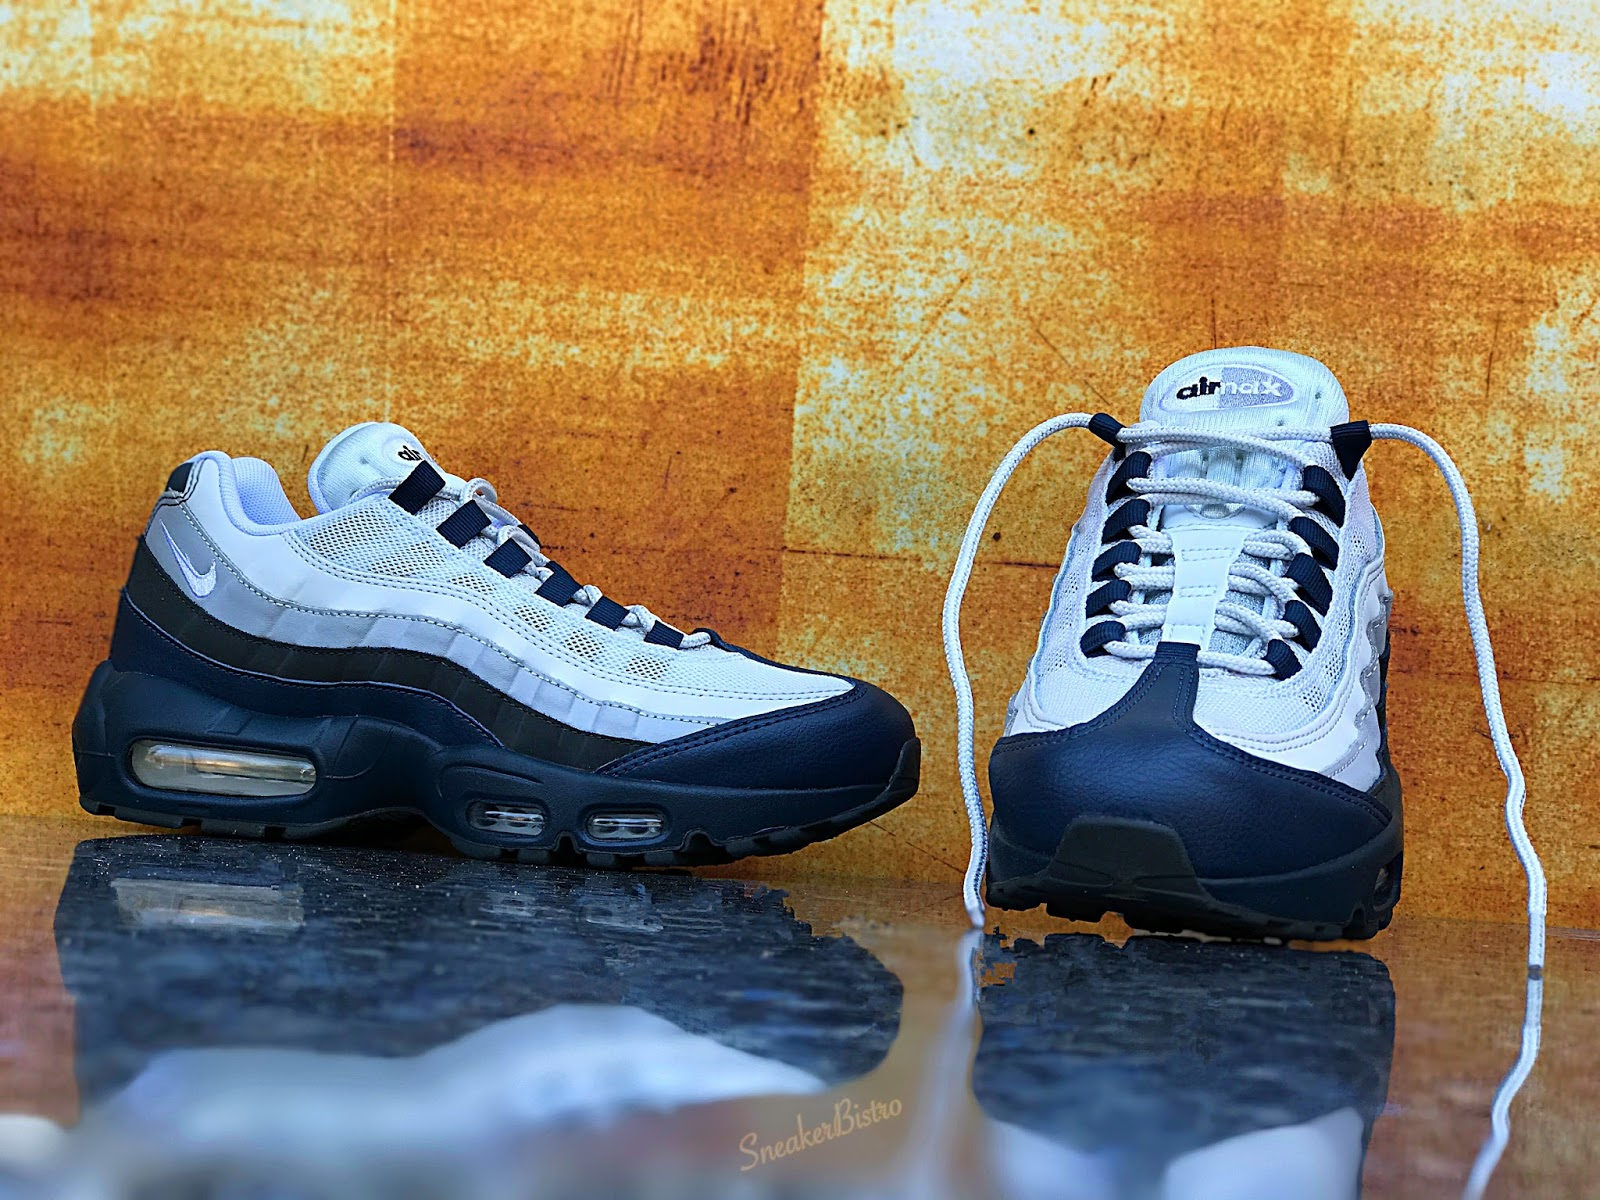 e23d6ee99e SNEAKER BISTRO - Streetwear Served w| Class: Nike Air Max 95 Armory ...